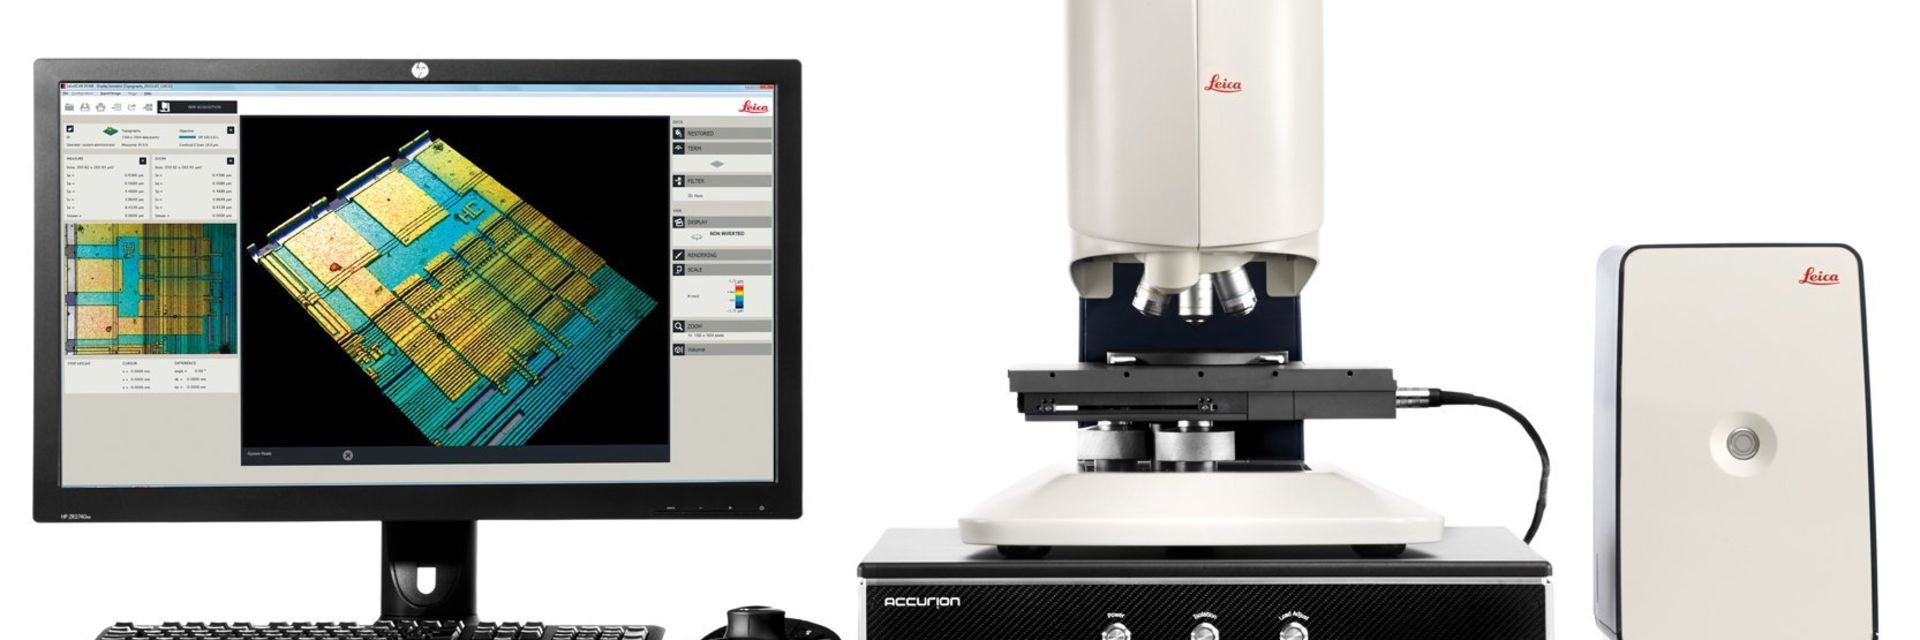 [Translate to chinese:] Leica DCM8 is a 3D surface metrology microscope that unites confocal microscopy and interferometry in one instrument.